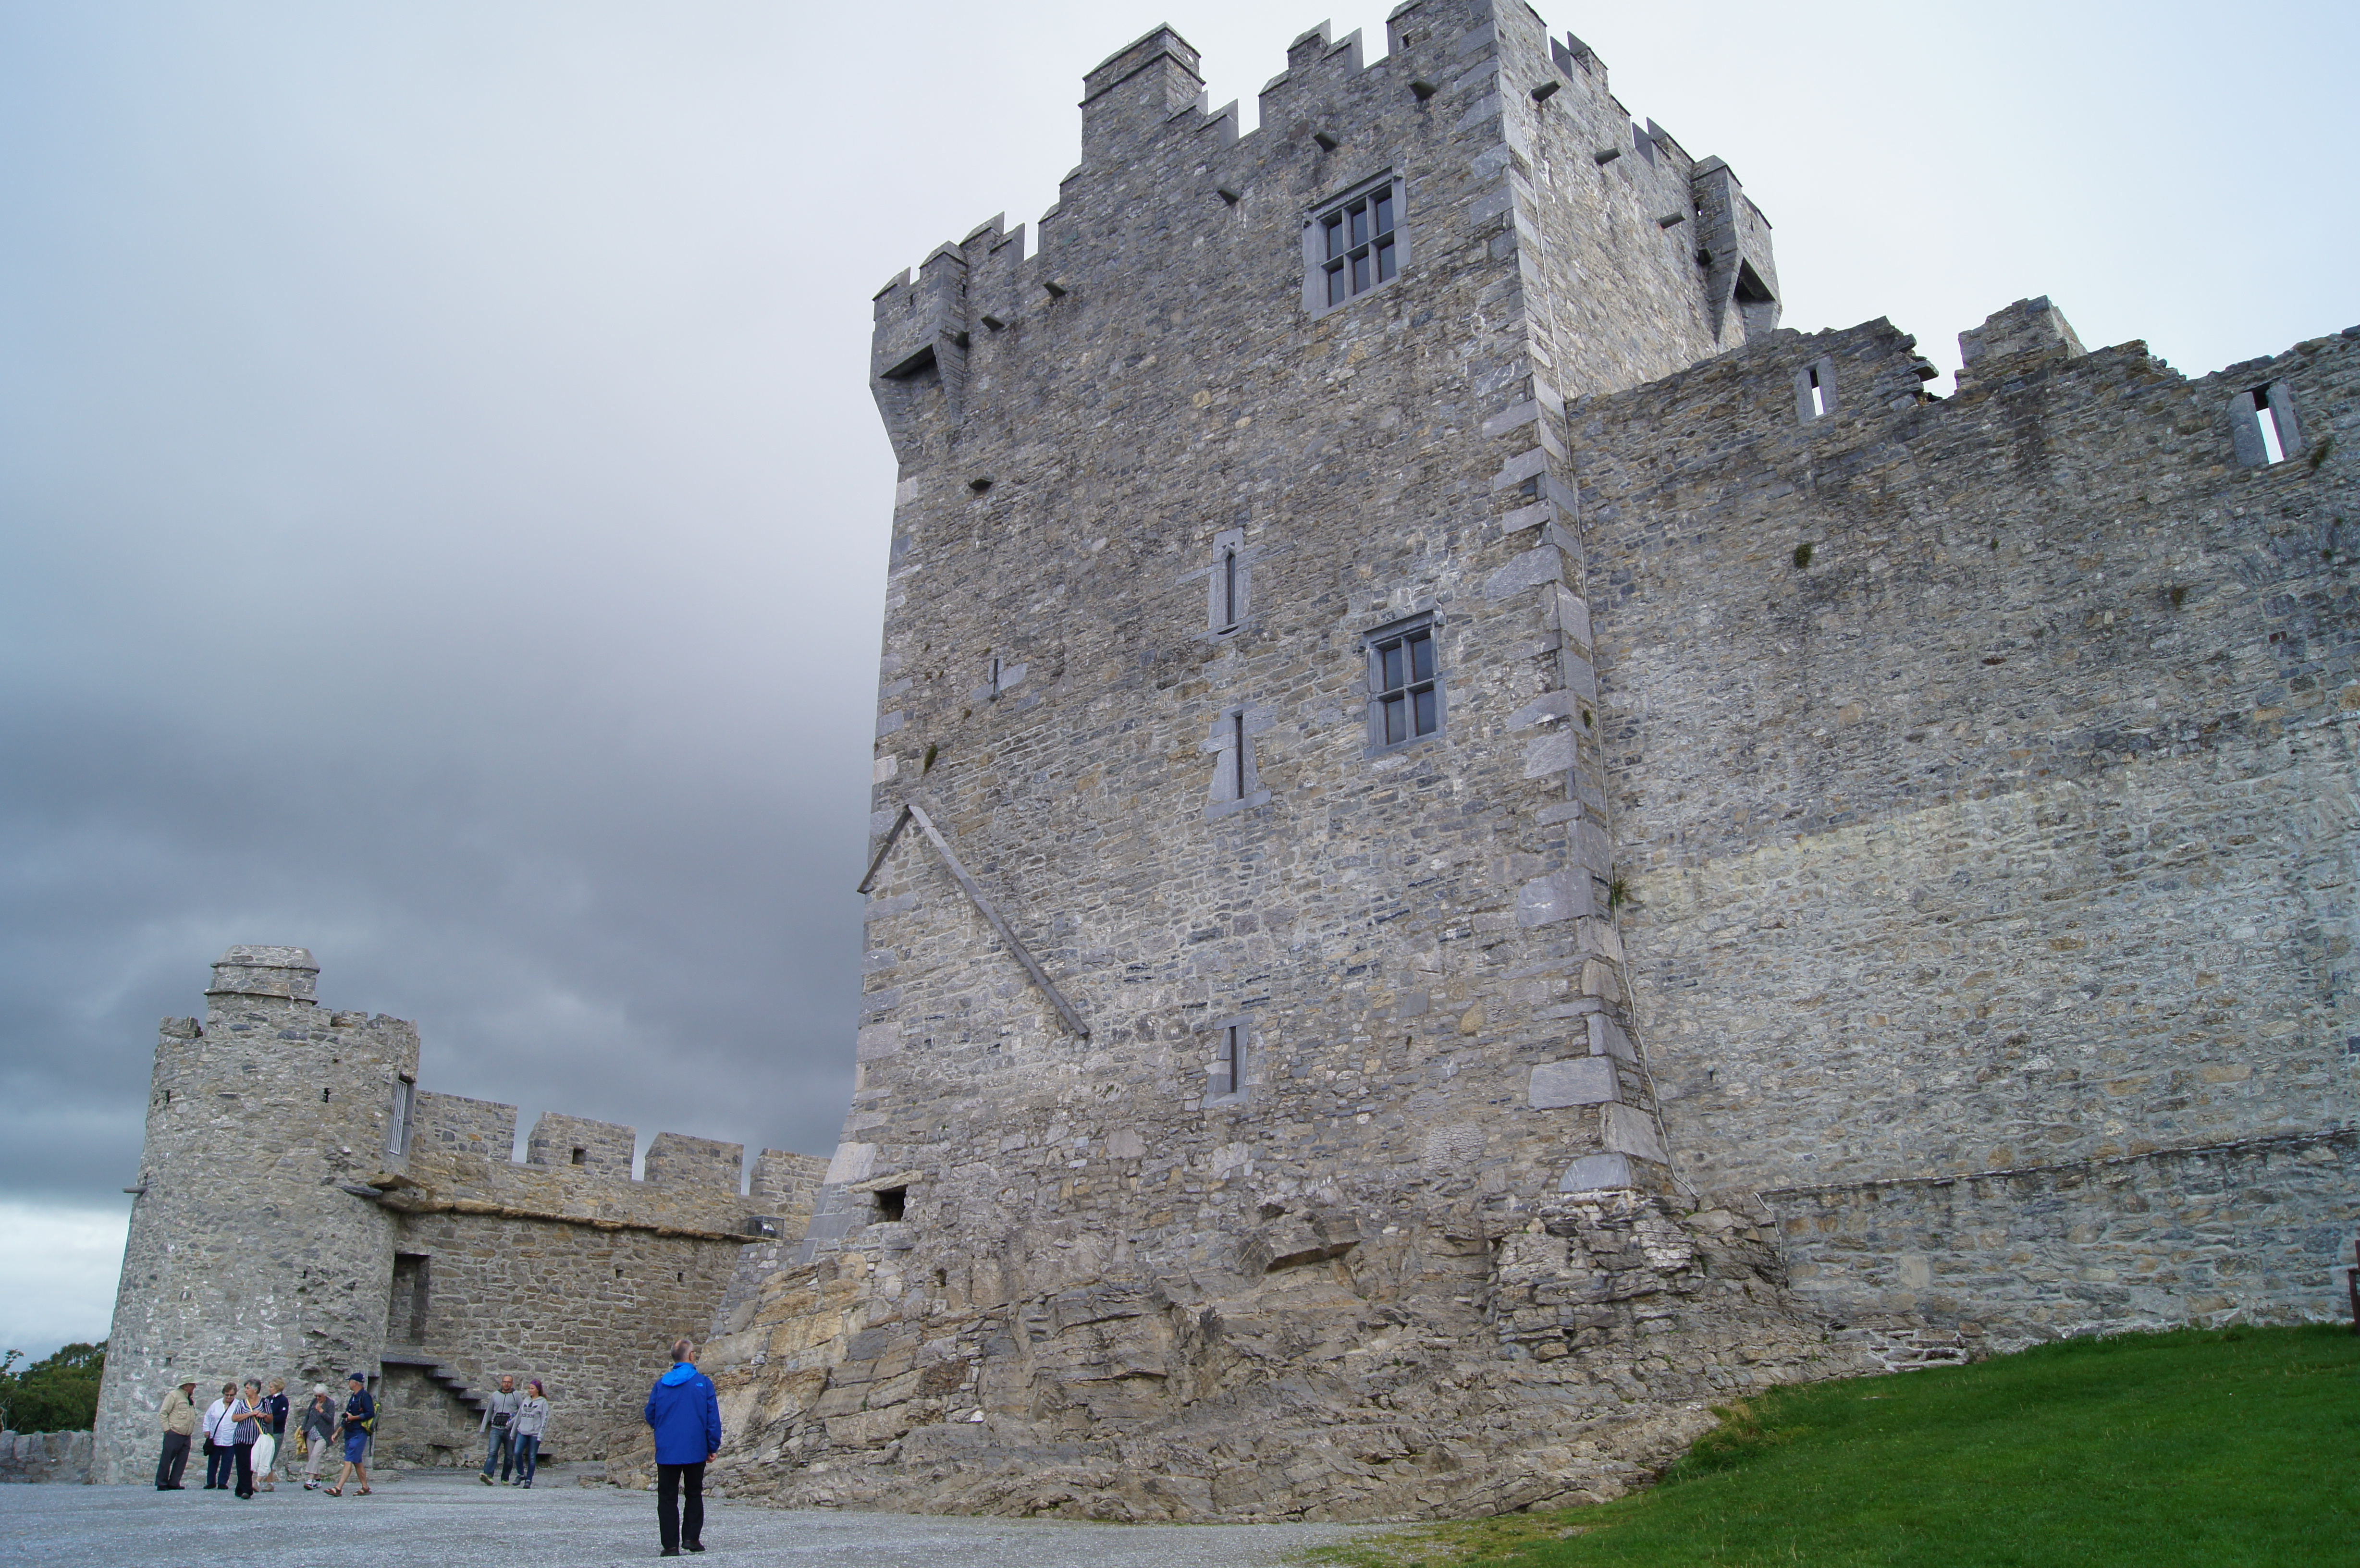 A castle in the nearby national park